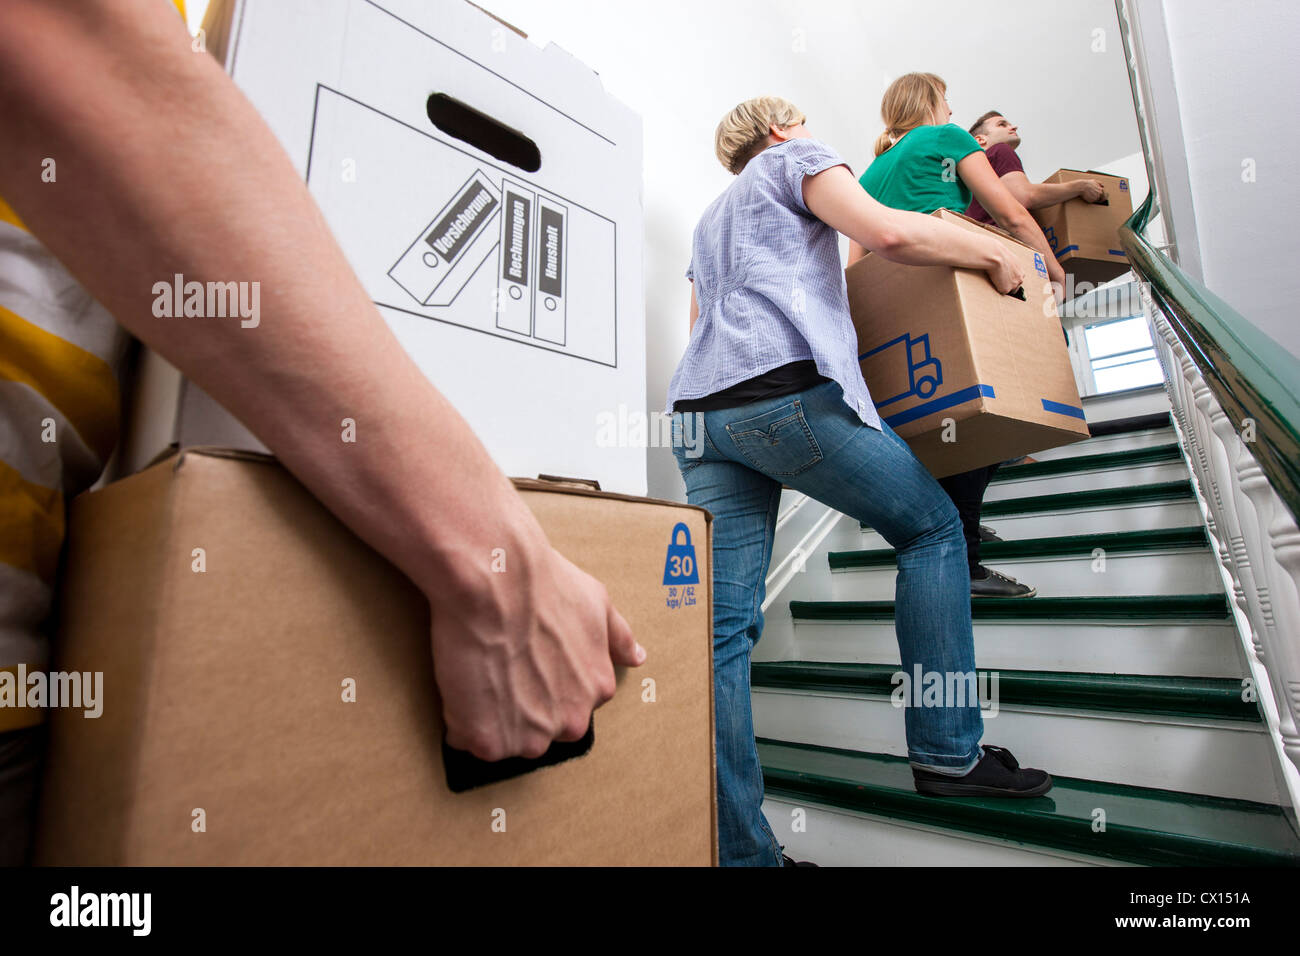 Move Furniture Stairs Stock Photos amp Move Furniture Stairs Stock